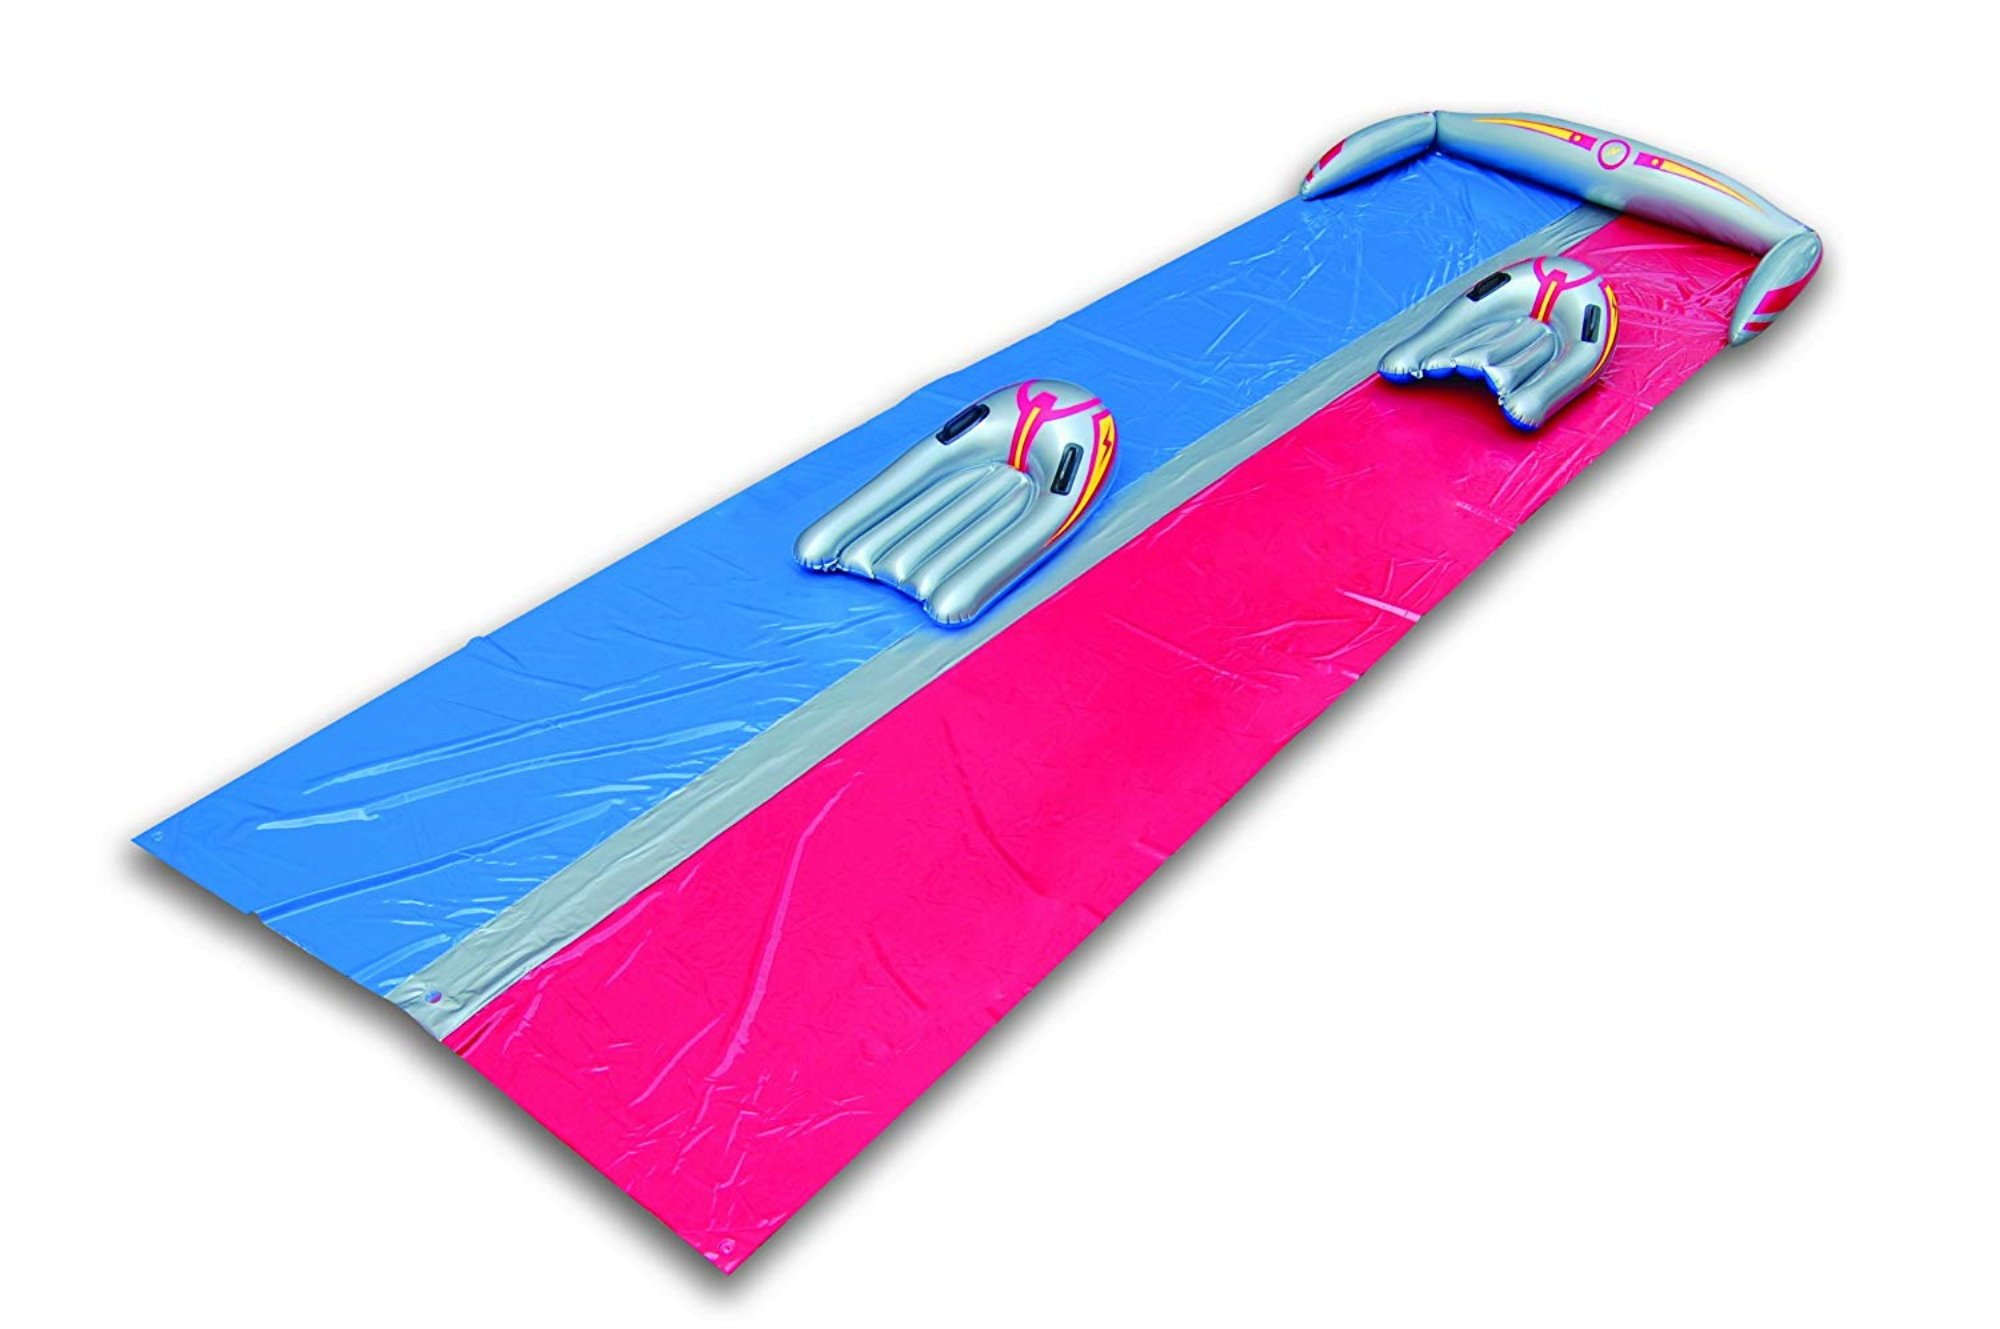 Inflatable Slip N Slide. This Big Sprinkler Tunnel Kiddie Blow Up Above Ground Long Waterslide Is Great For Kids & Children, Aqua Splash To Have Outdoor Water Fun With All Family. 14 Foot